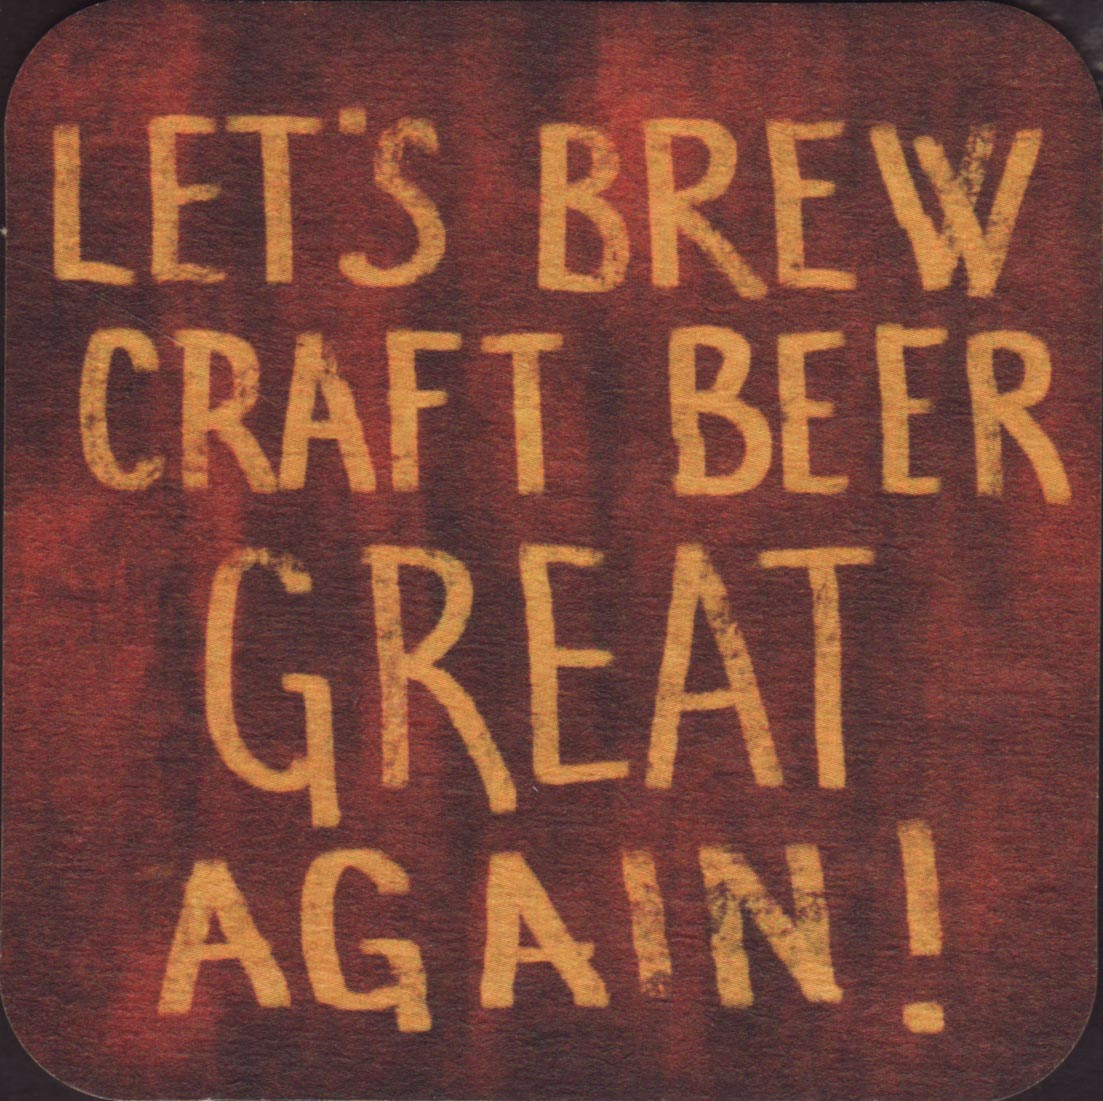 Beer coaster 1516-the-brewing-company-5-zadek